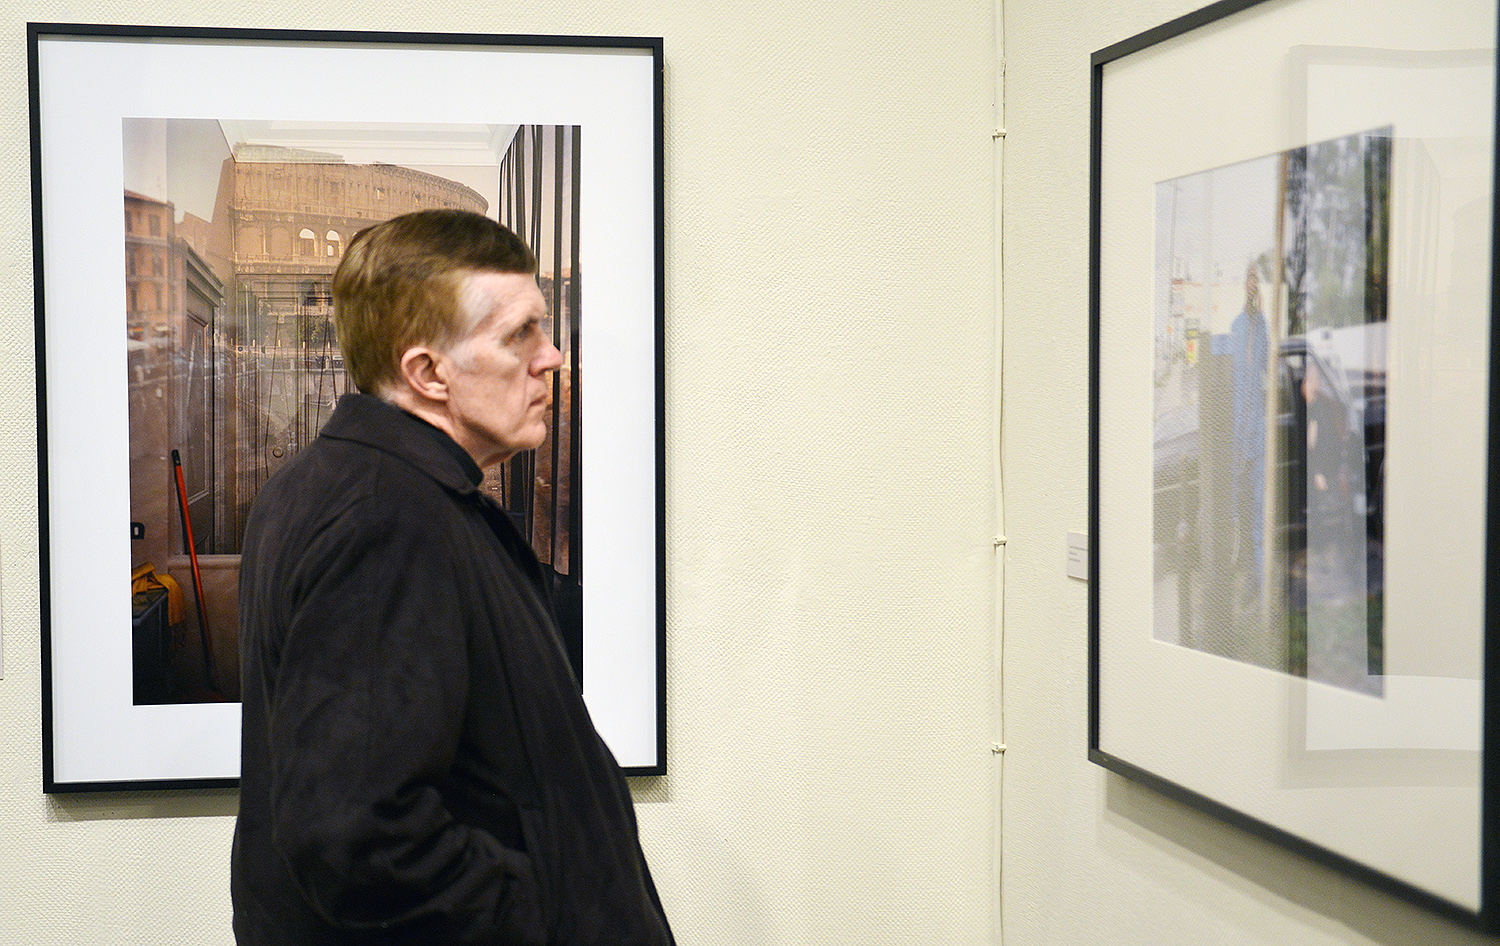 The photographs on display reveal the shift from the intimate scale of gelatin-silver prints to immersive large-scale color digital images, however the artists retain connections to the earlier traditions of landscape, genre, and portrait photography. Featured artists include Adou, Philip-Lorca DiCorcia, George Georgiuo, Richard Misrach, Abelardo Morell, Robert Adams, Joe Deal, and Richard Misrach, Curran Hatleberg, Jem Southam and others.